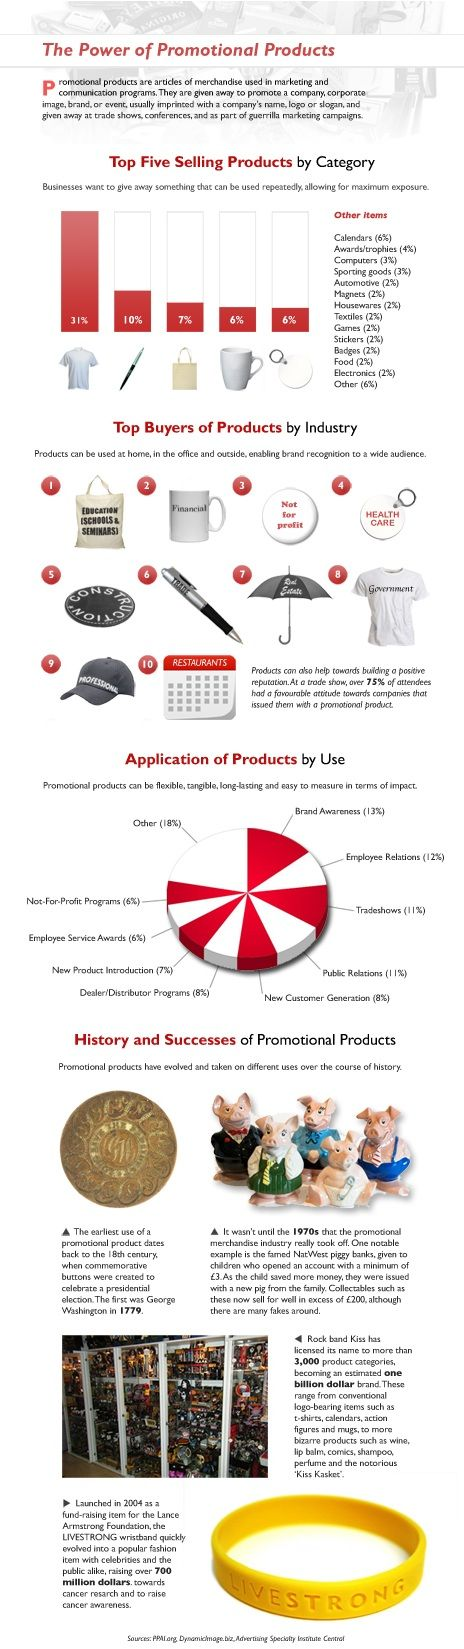 The power of Promotional Products at: http://www.marlerhaley.co.uk/blog/index.php/2011/11/14/the-power-of-promotional-products/